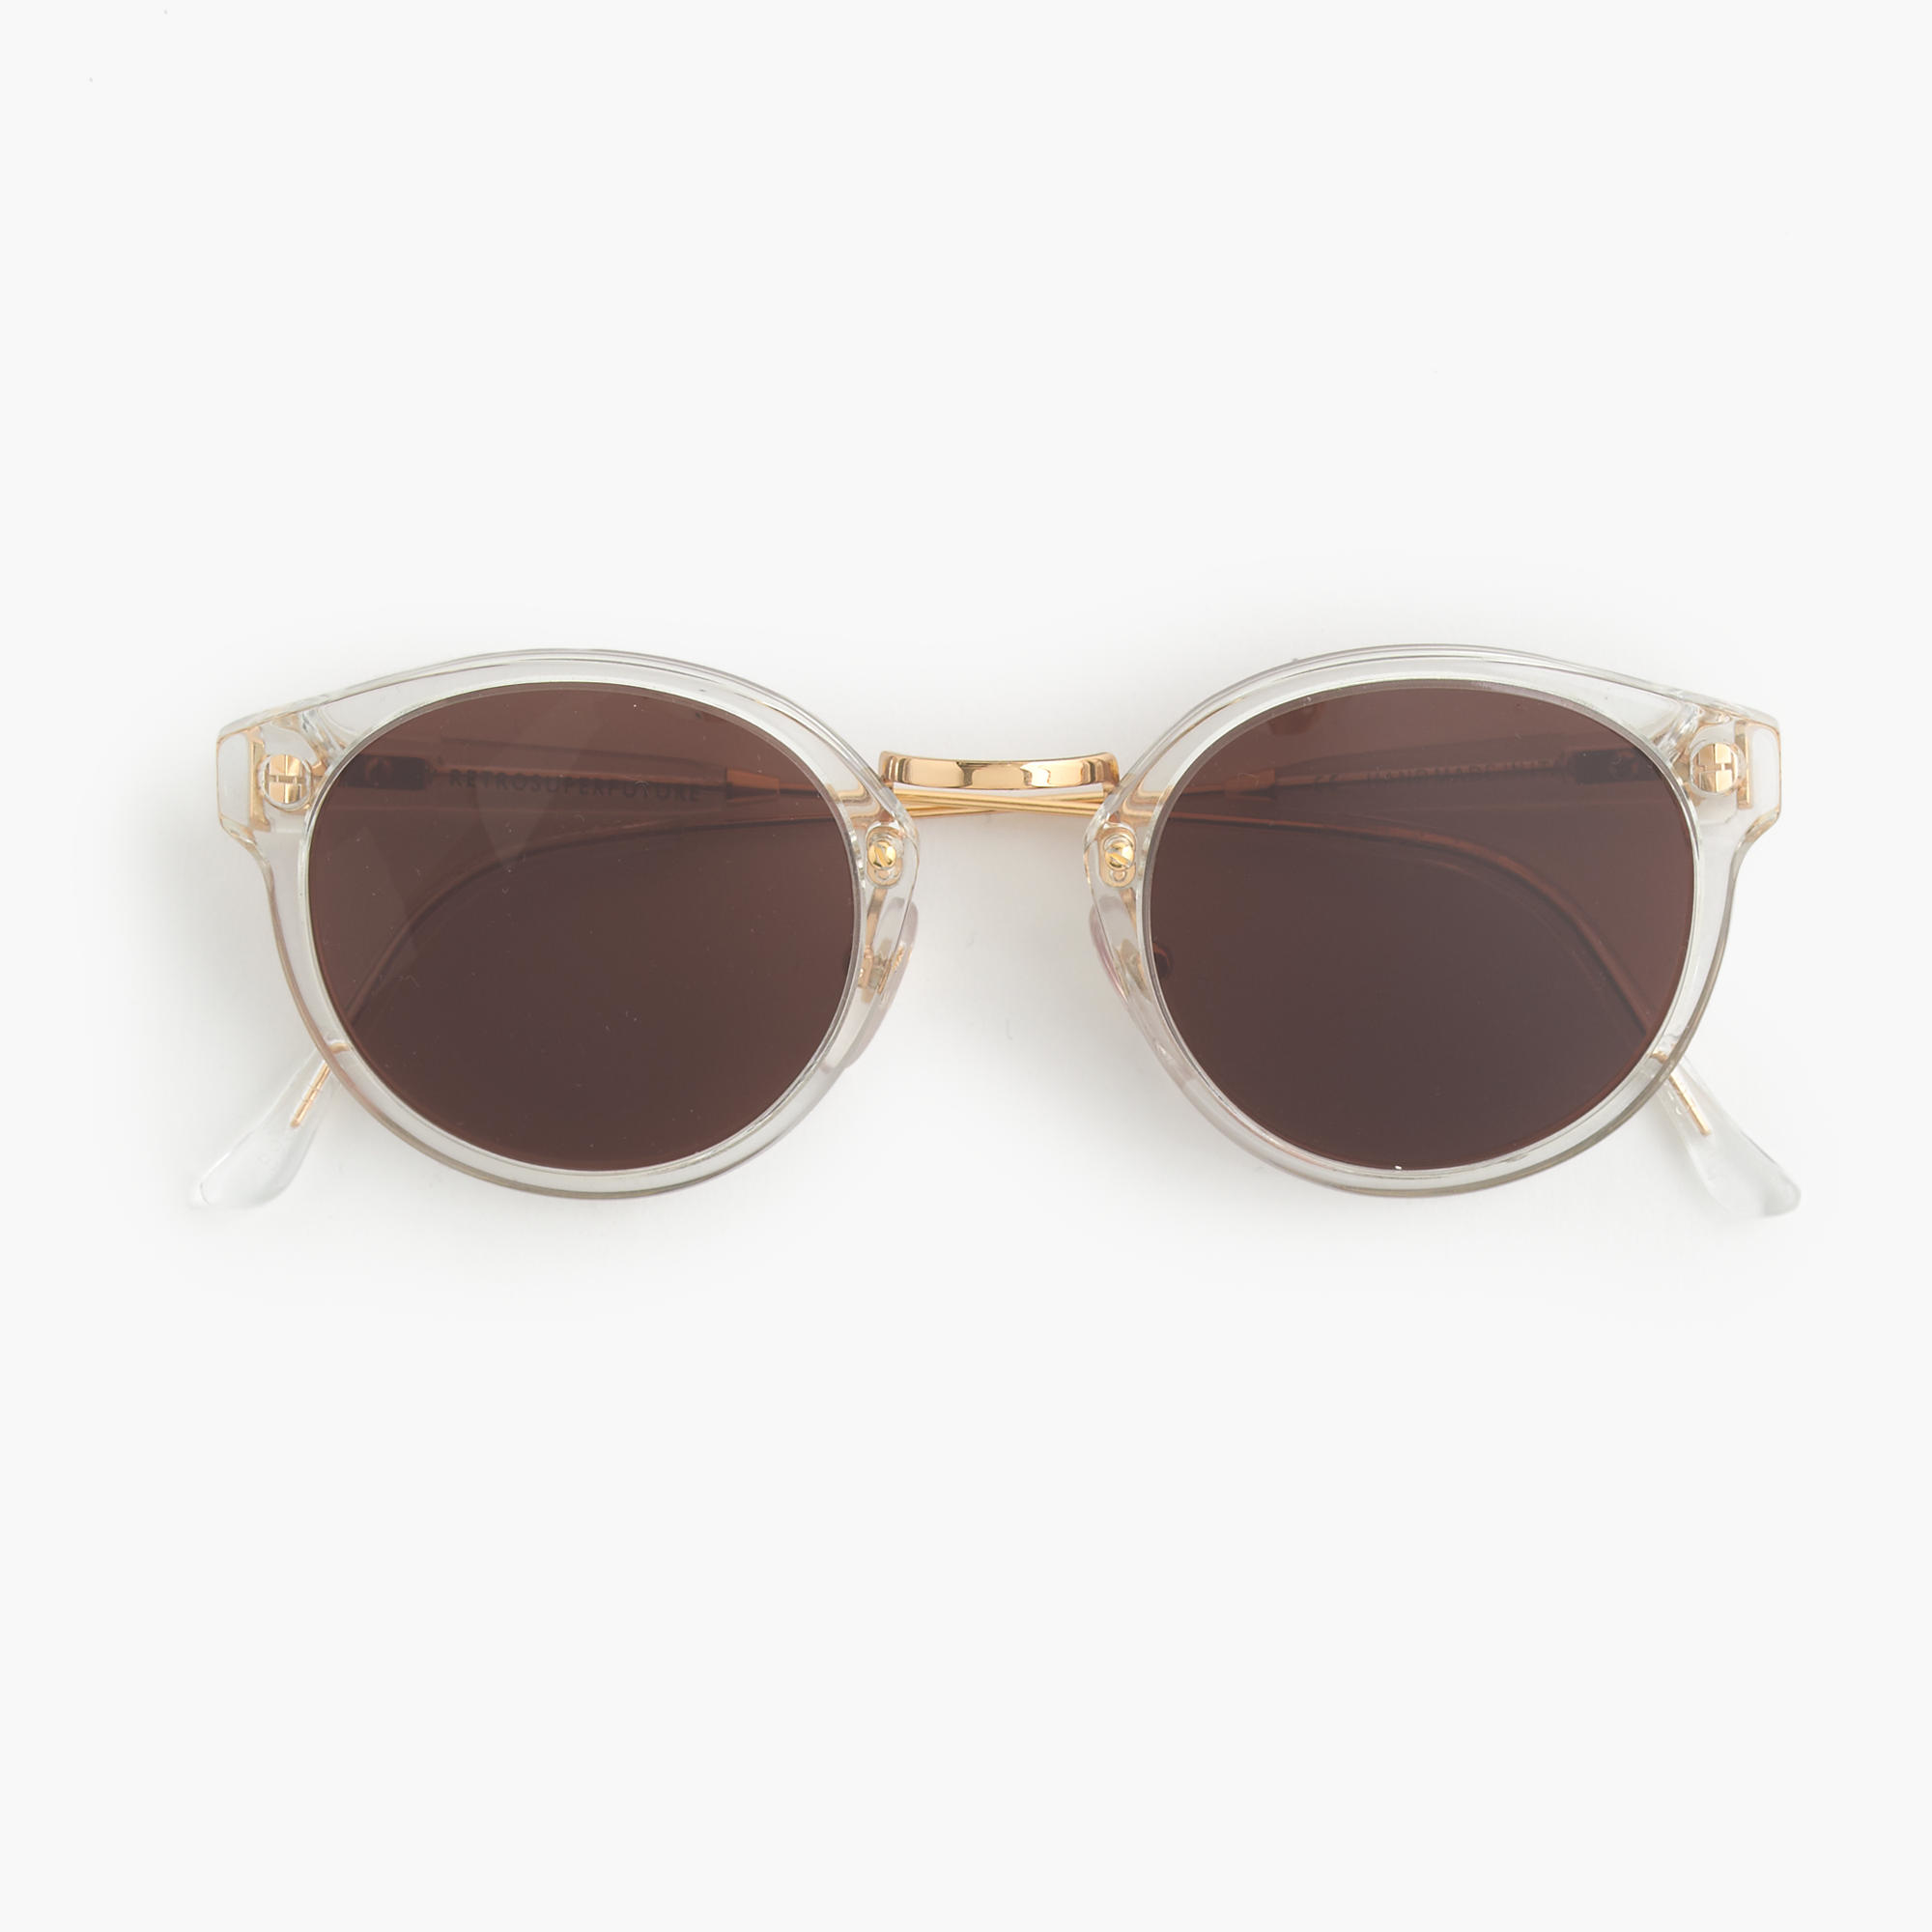 Clear Frame Glasses Retro : J.crew Super Retro Sunglasses With Clear Frame in Brown Lyst